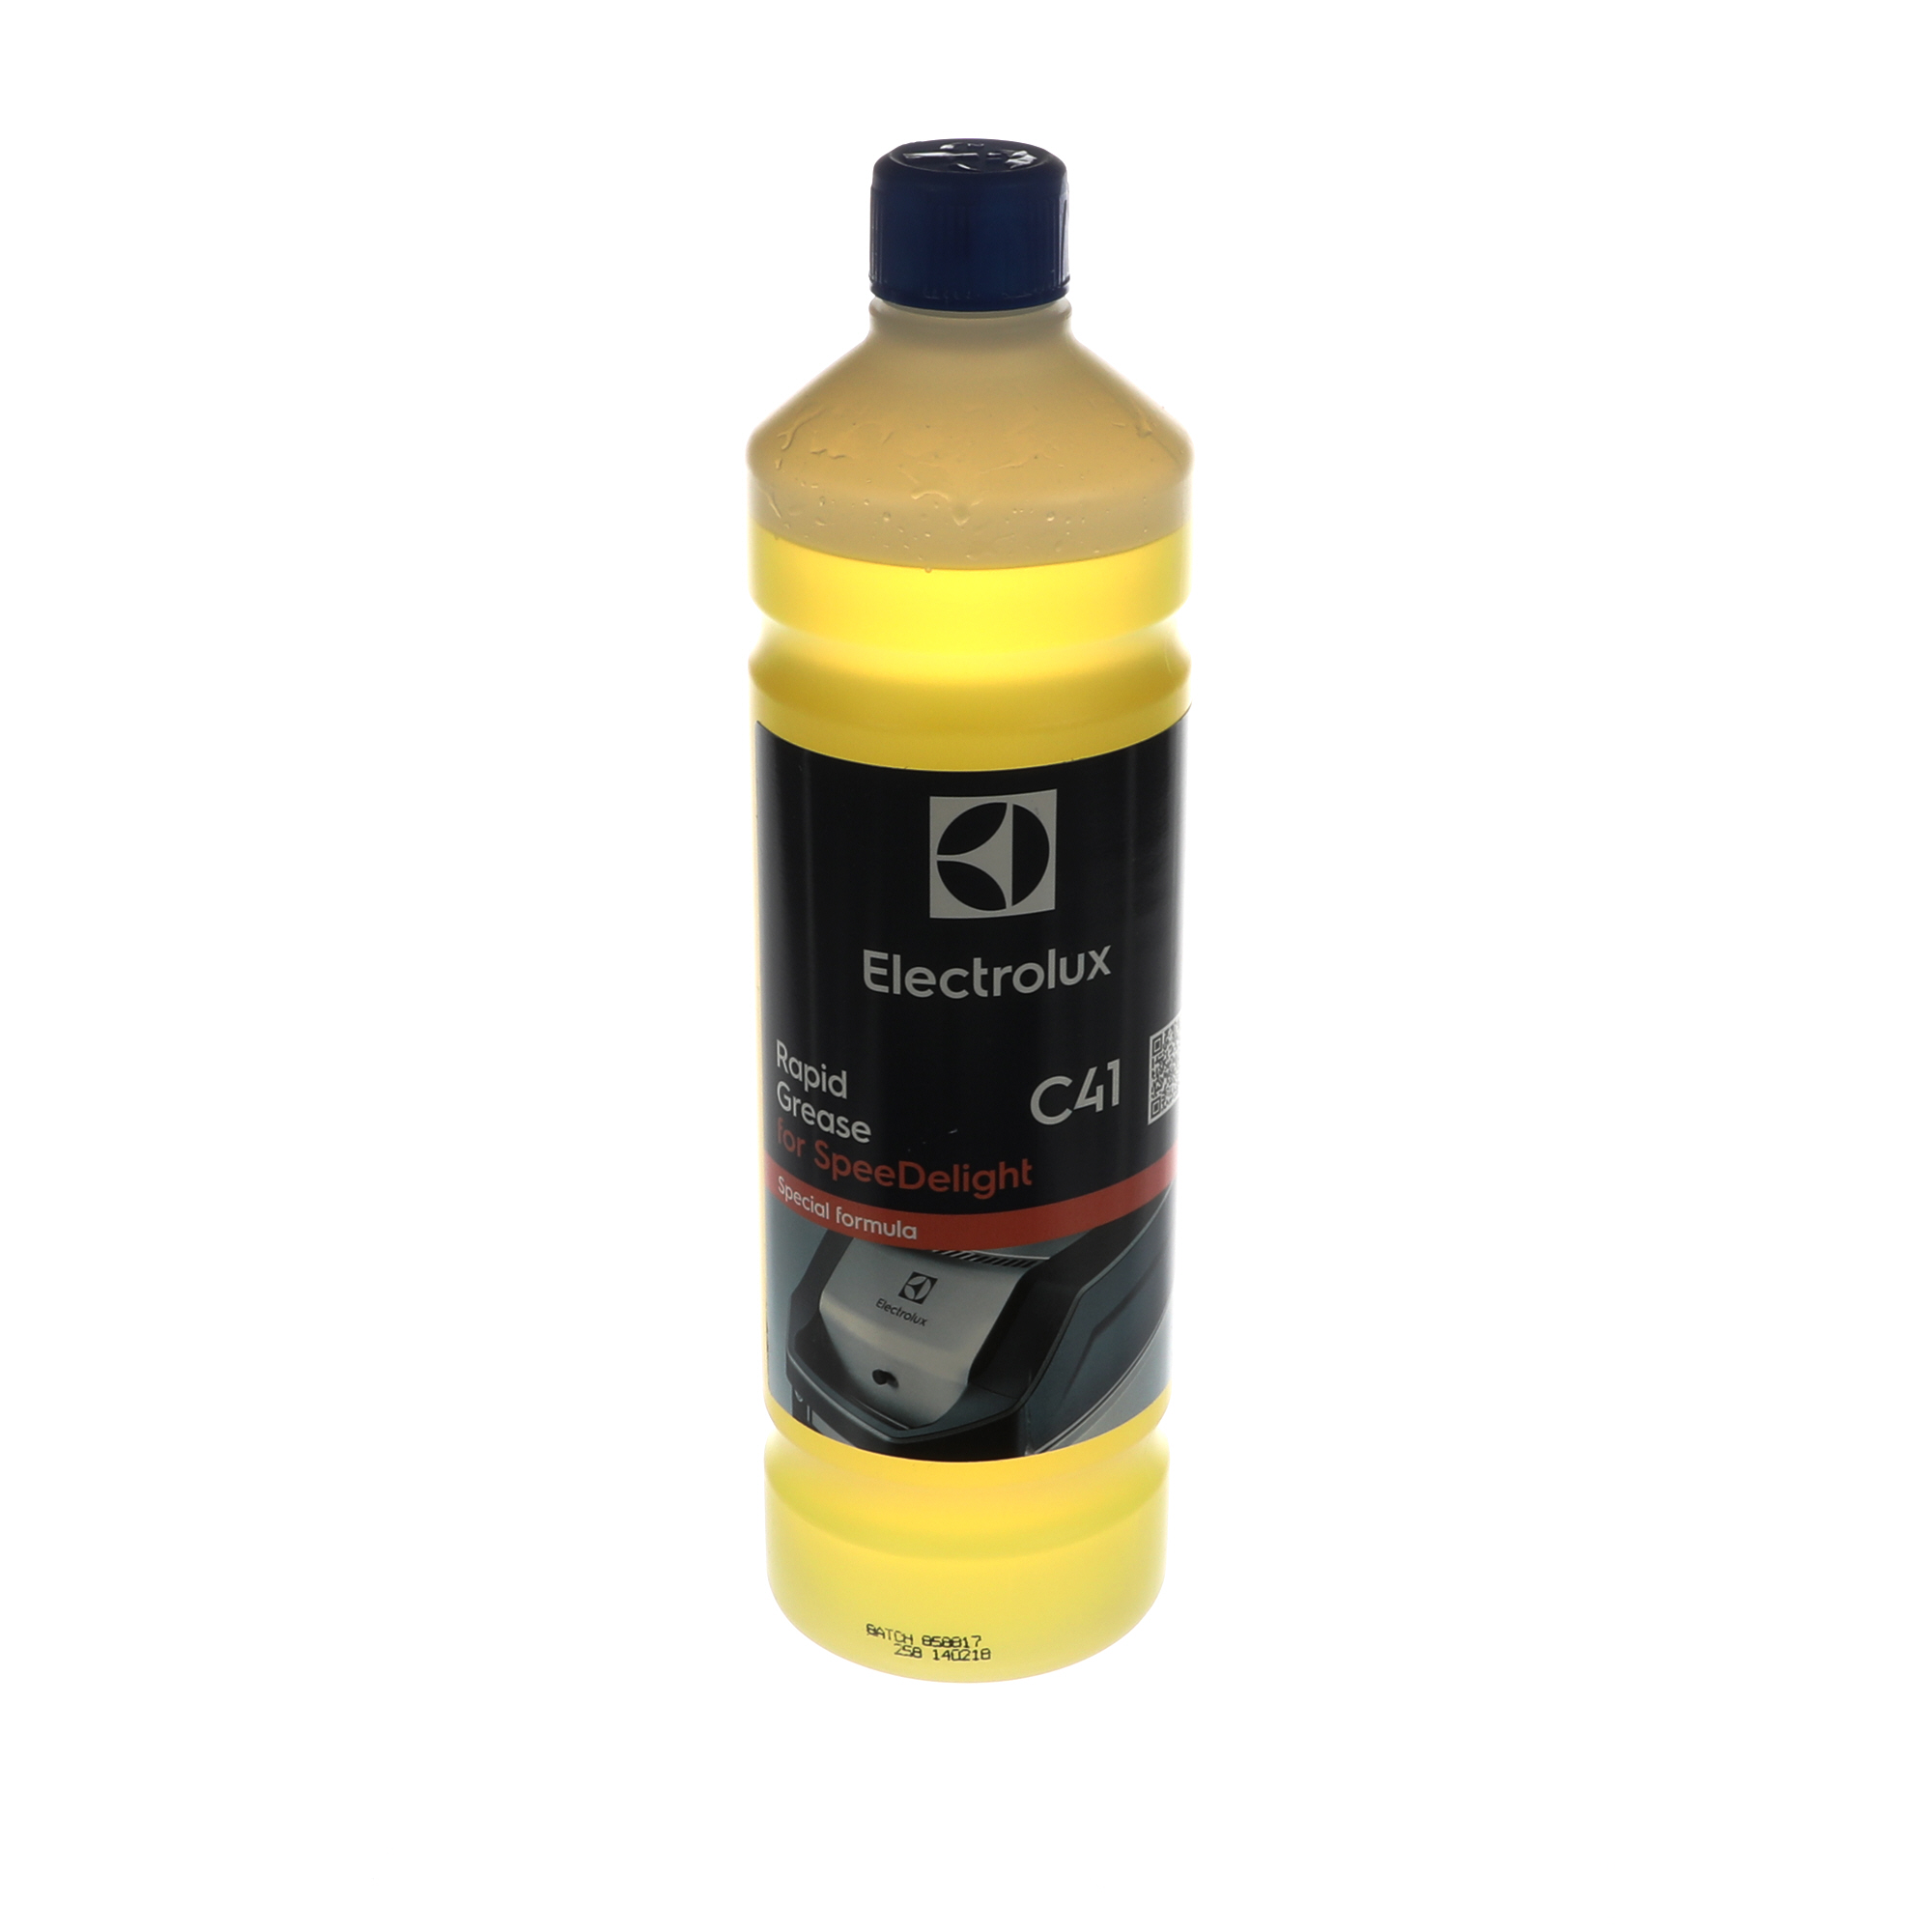 RAPID GREASE 6pcx1ltr + Trigger